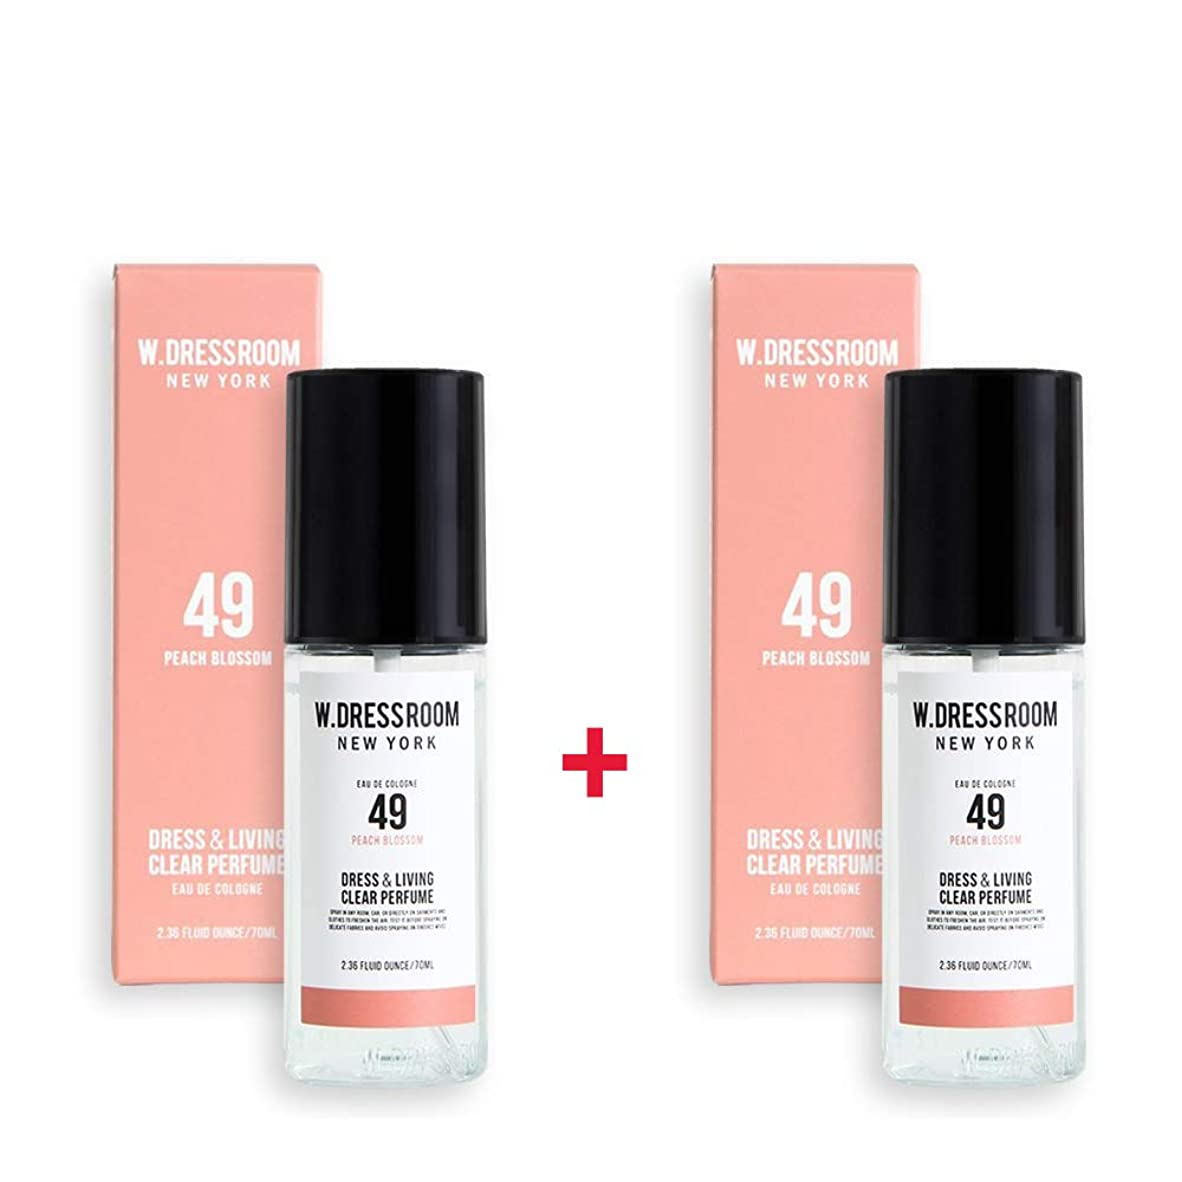 拡散する不安定な首相W.DRESSROOM Dress & Living Clear Perfume 70ml (No 49 Peach Blossom)+(No 49 Peach Blossom)